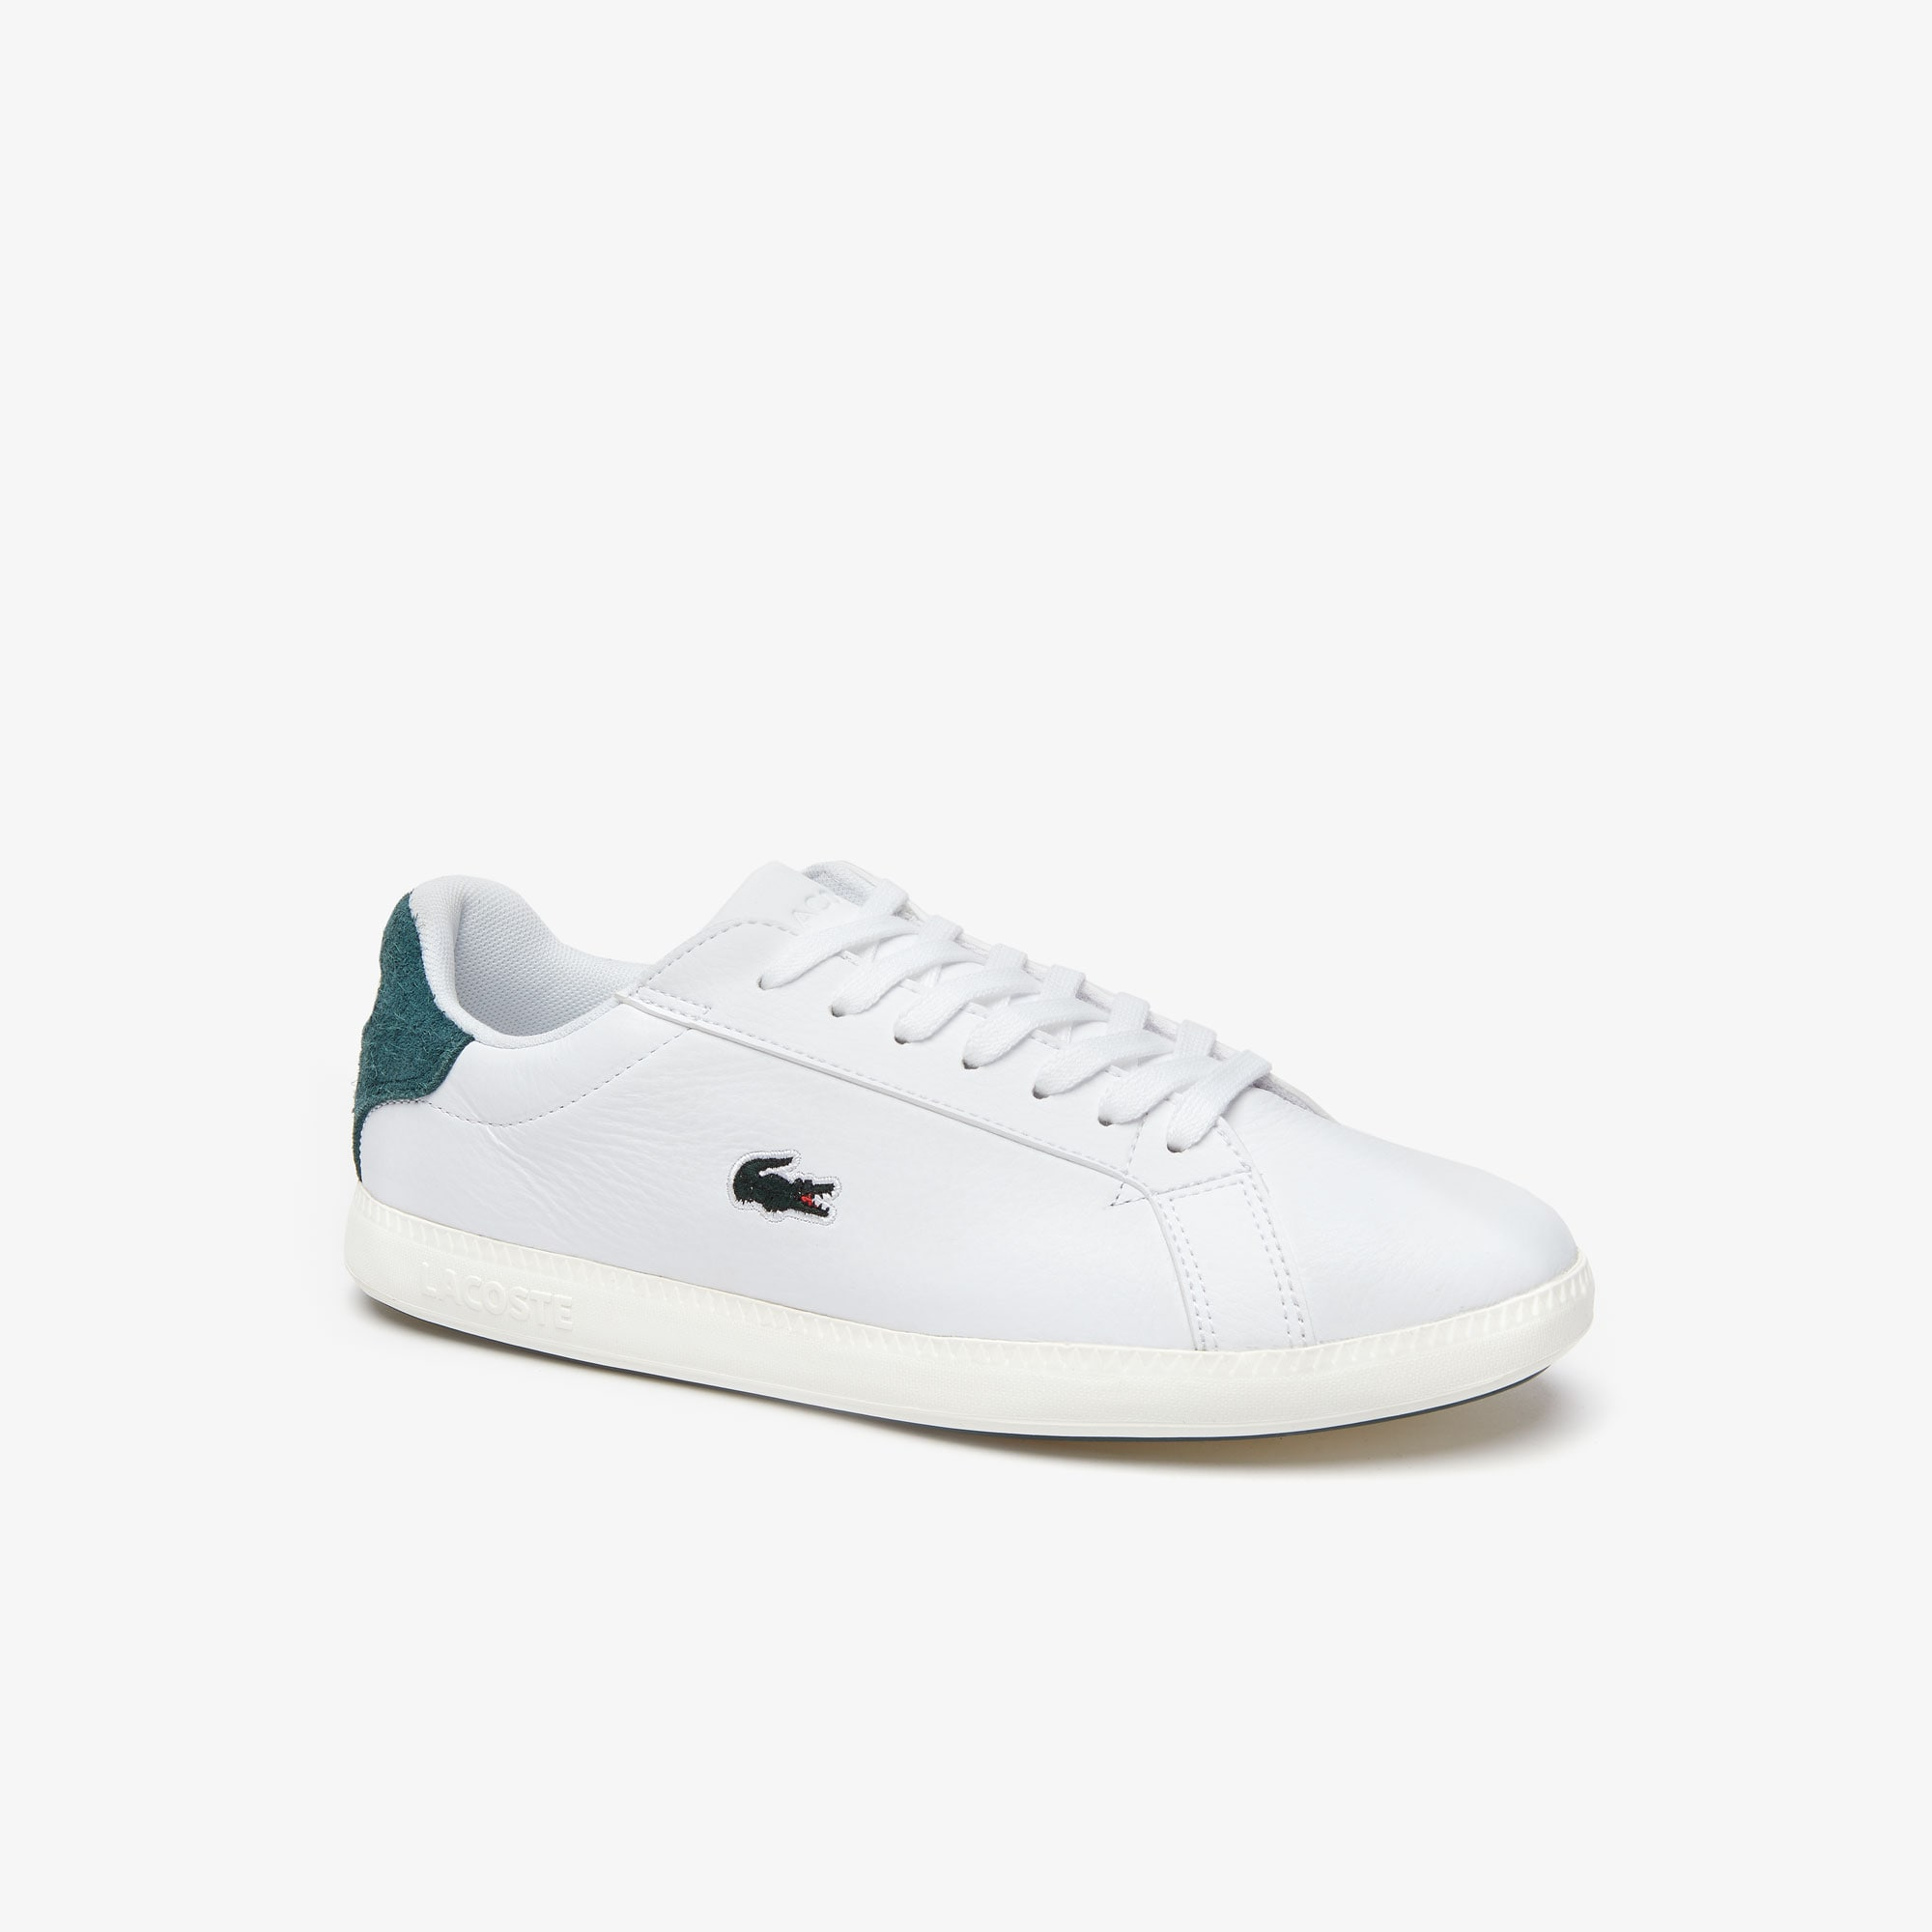 Lacoste Femmecollection Chaussures Femmecollection Lacoste Chaussures Femmecollection T13lFKcJ